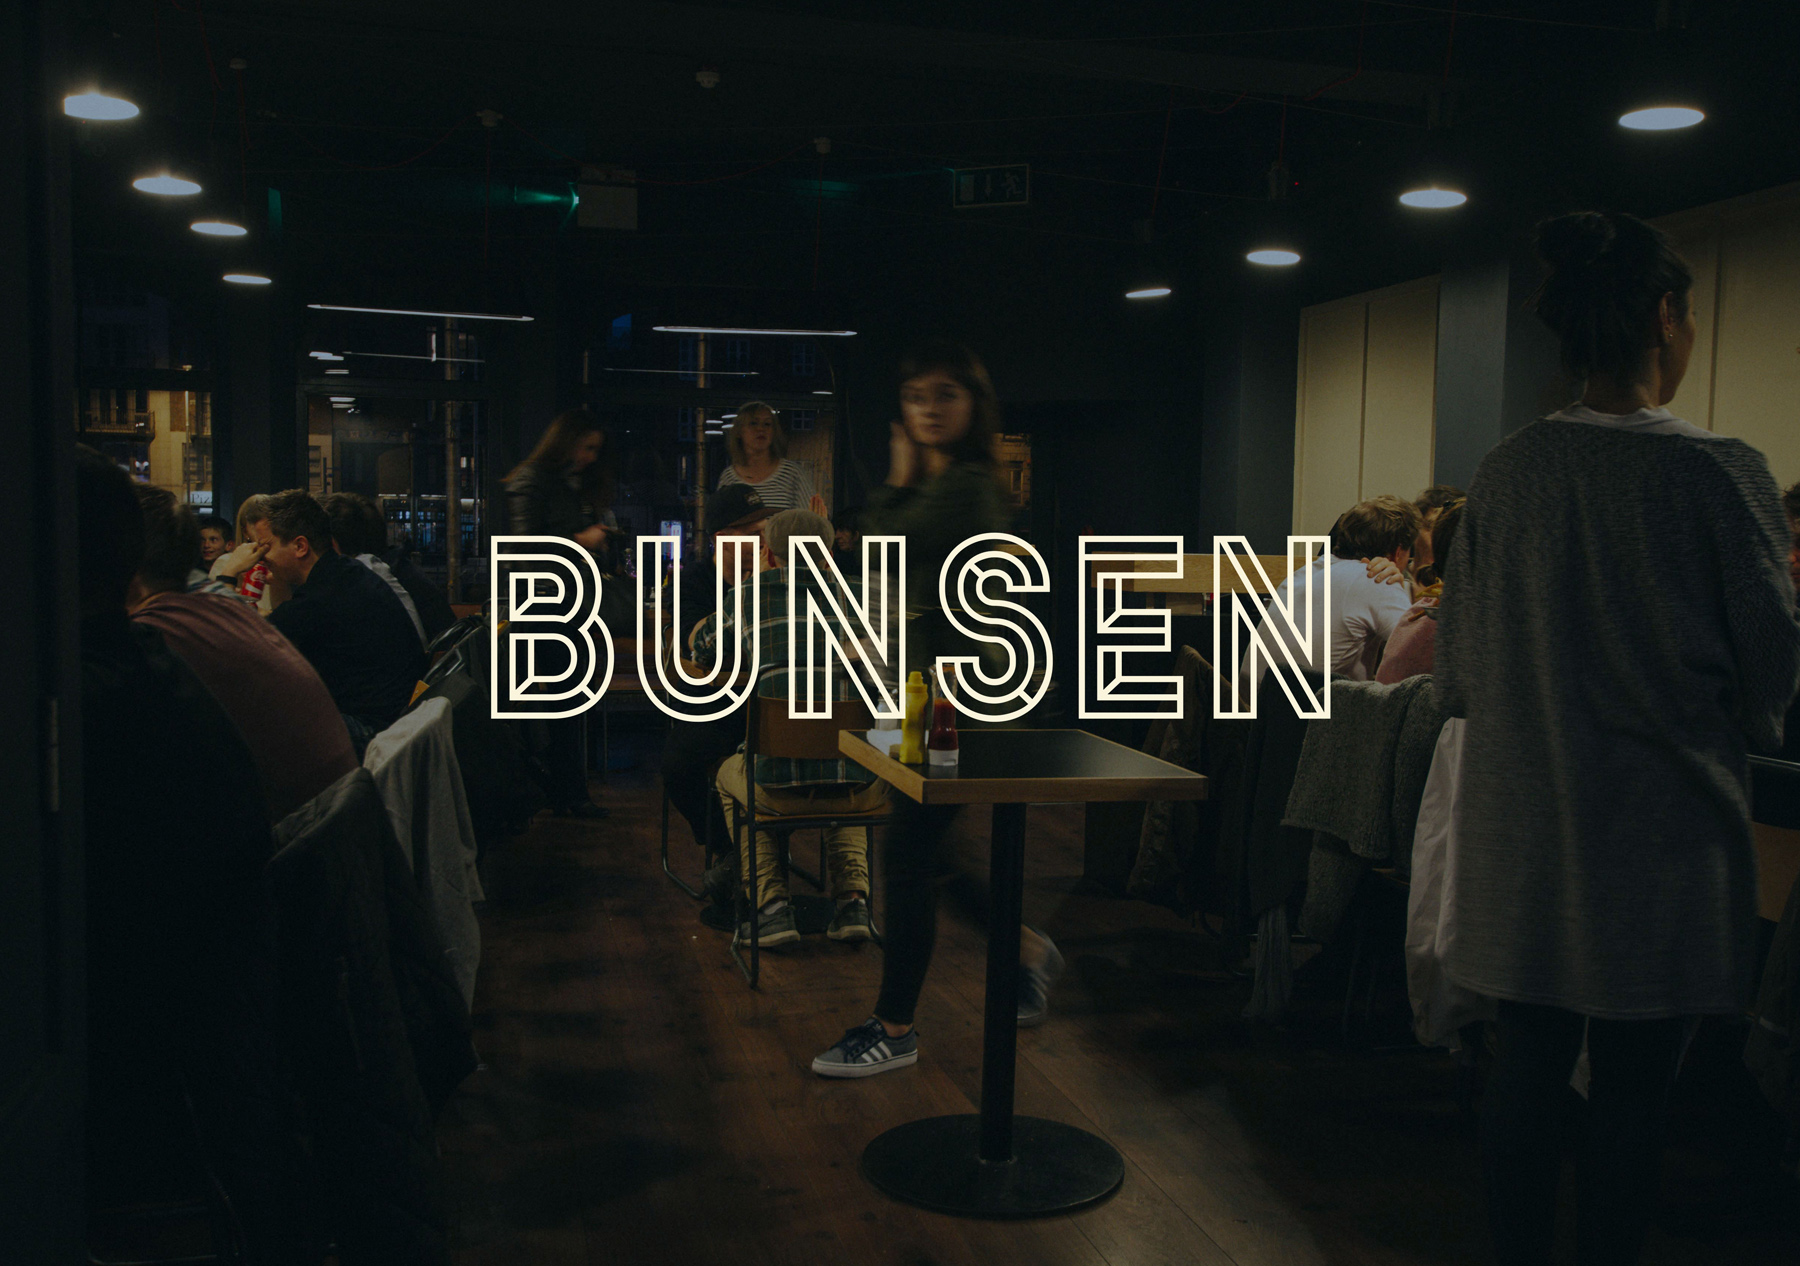 Cover image: Bunsen (2018)